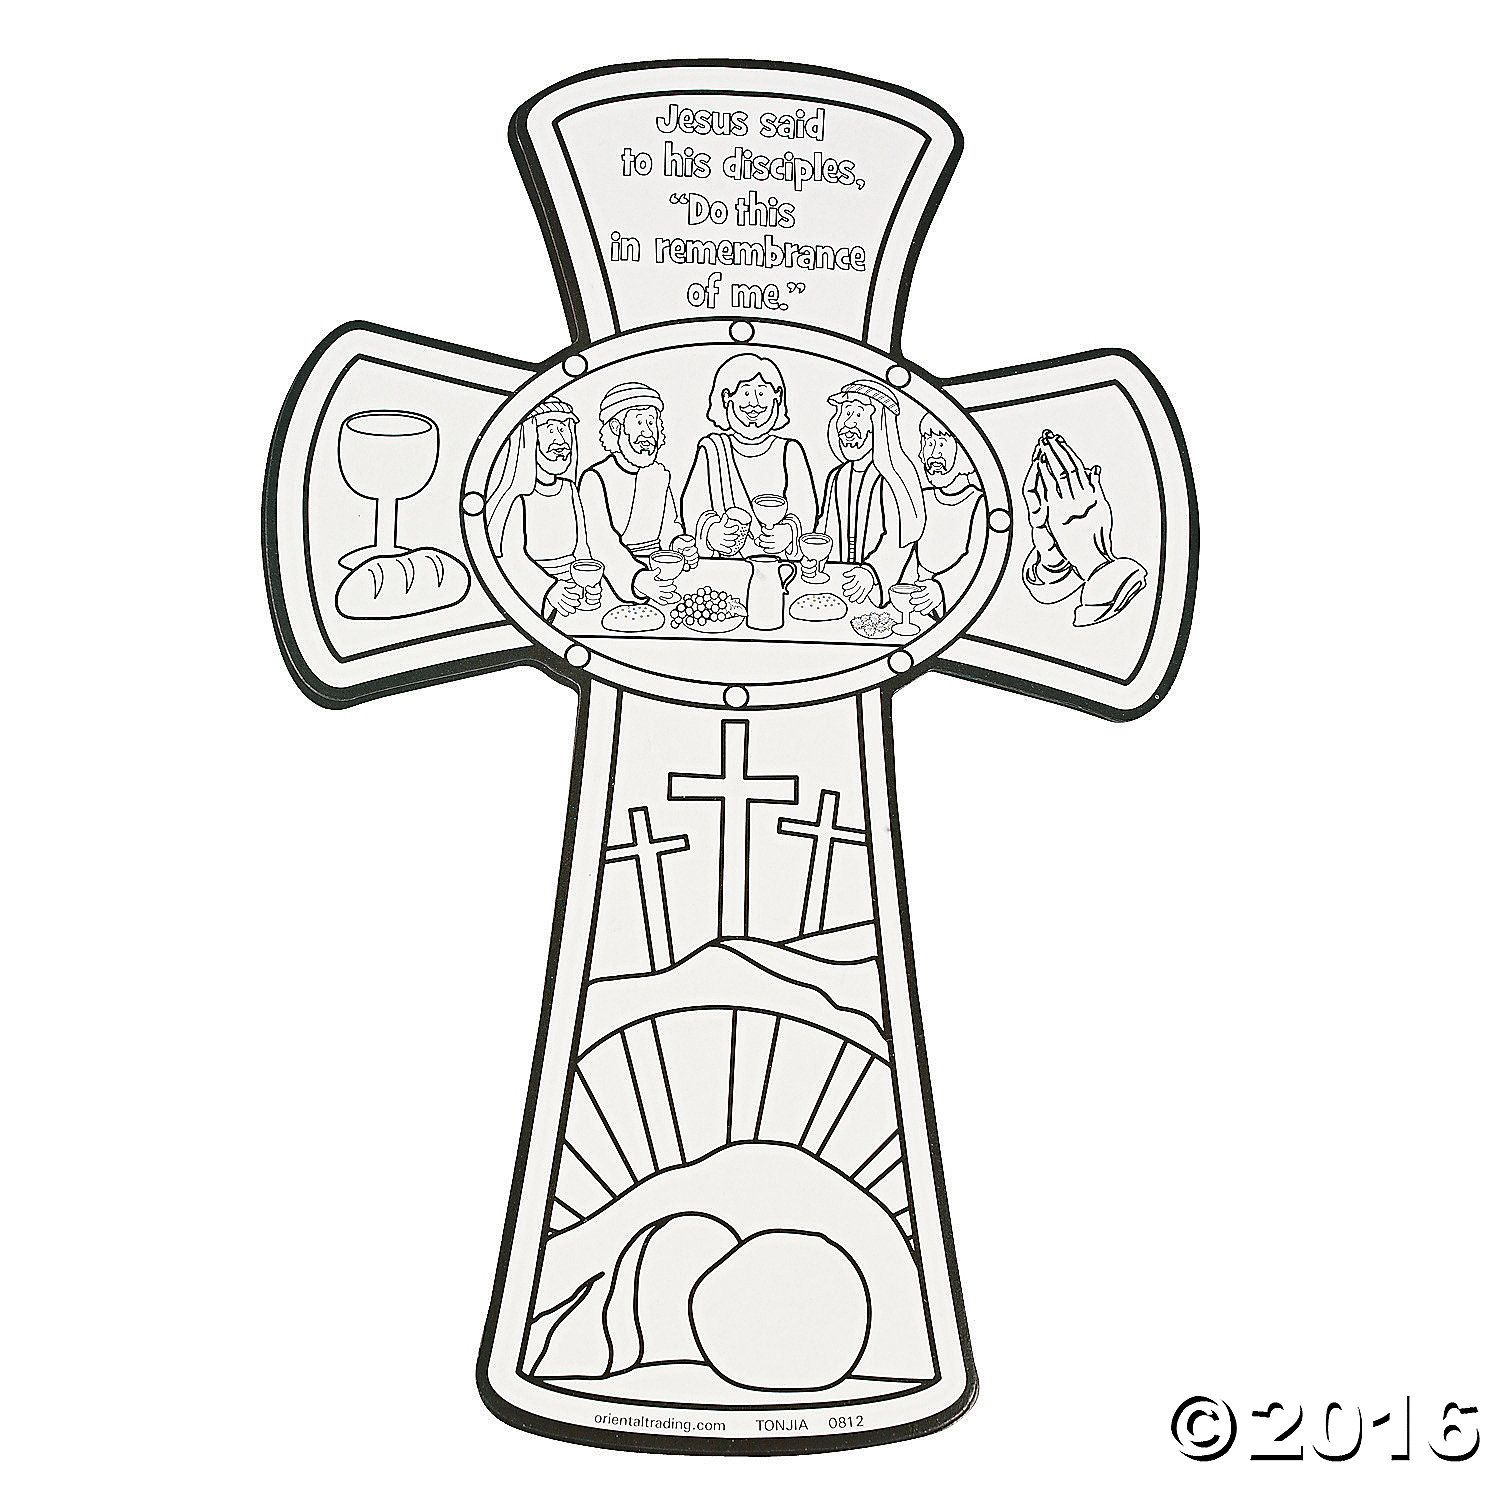 Color Your Own Last Supper Cross Cutouts Vbs CraftsBible CraftsEaster CraftsColoring SheetsBible